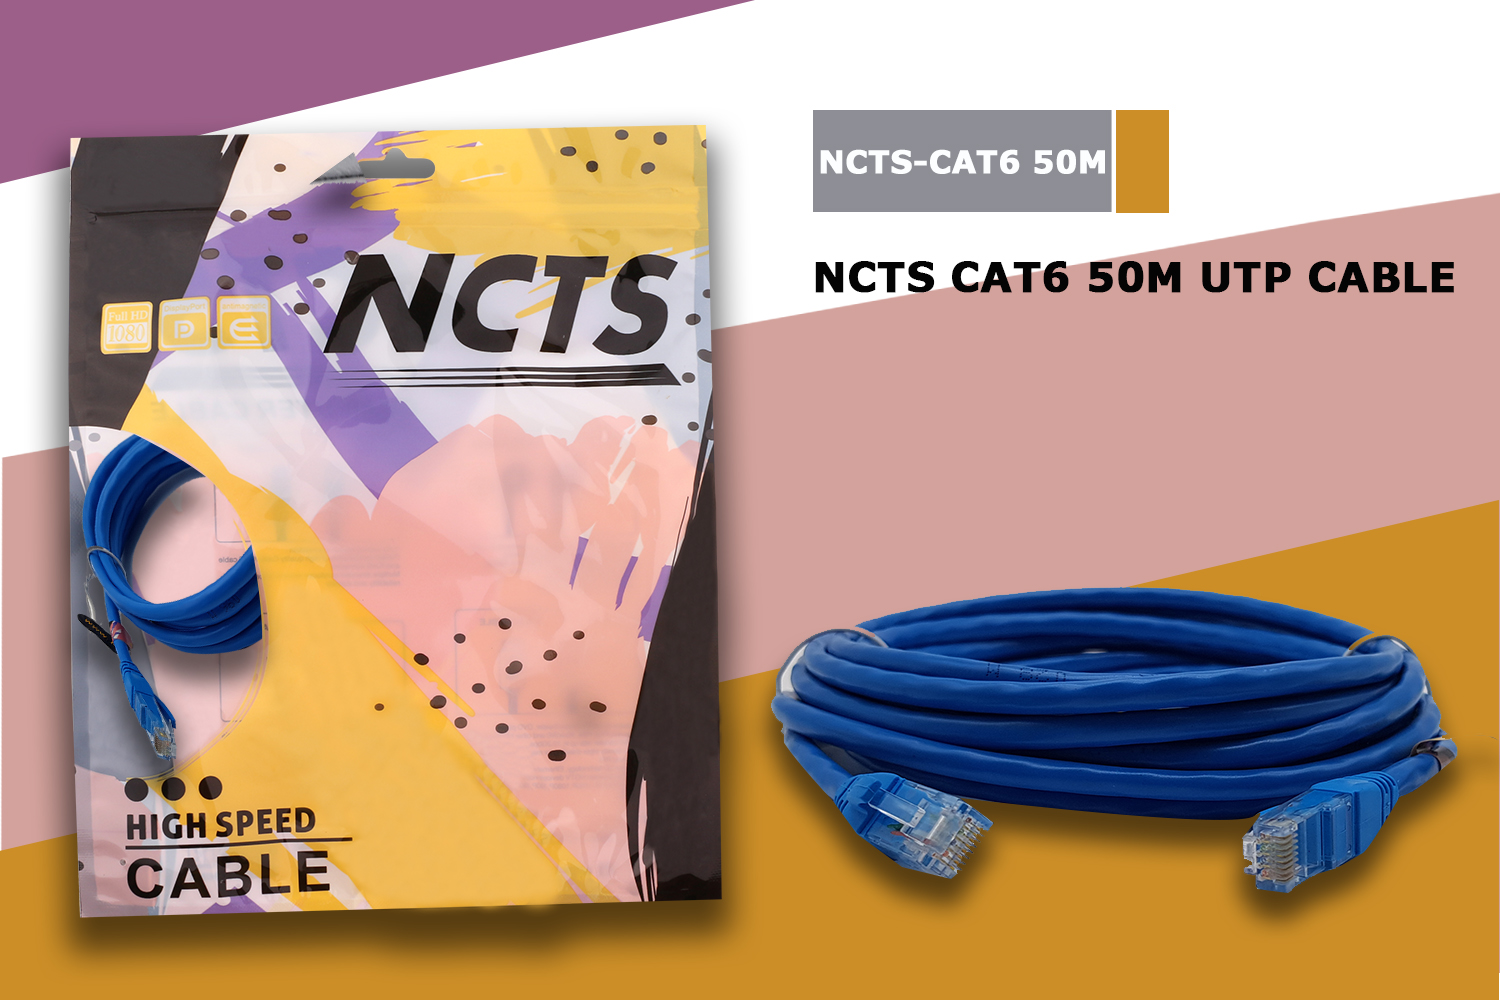 NCTS CAT6 UTP CABLE 50M